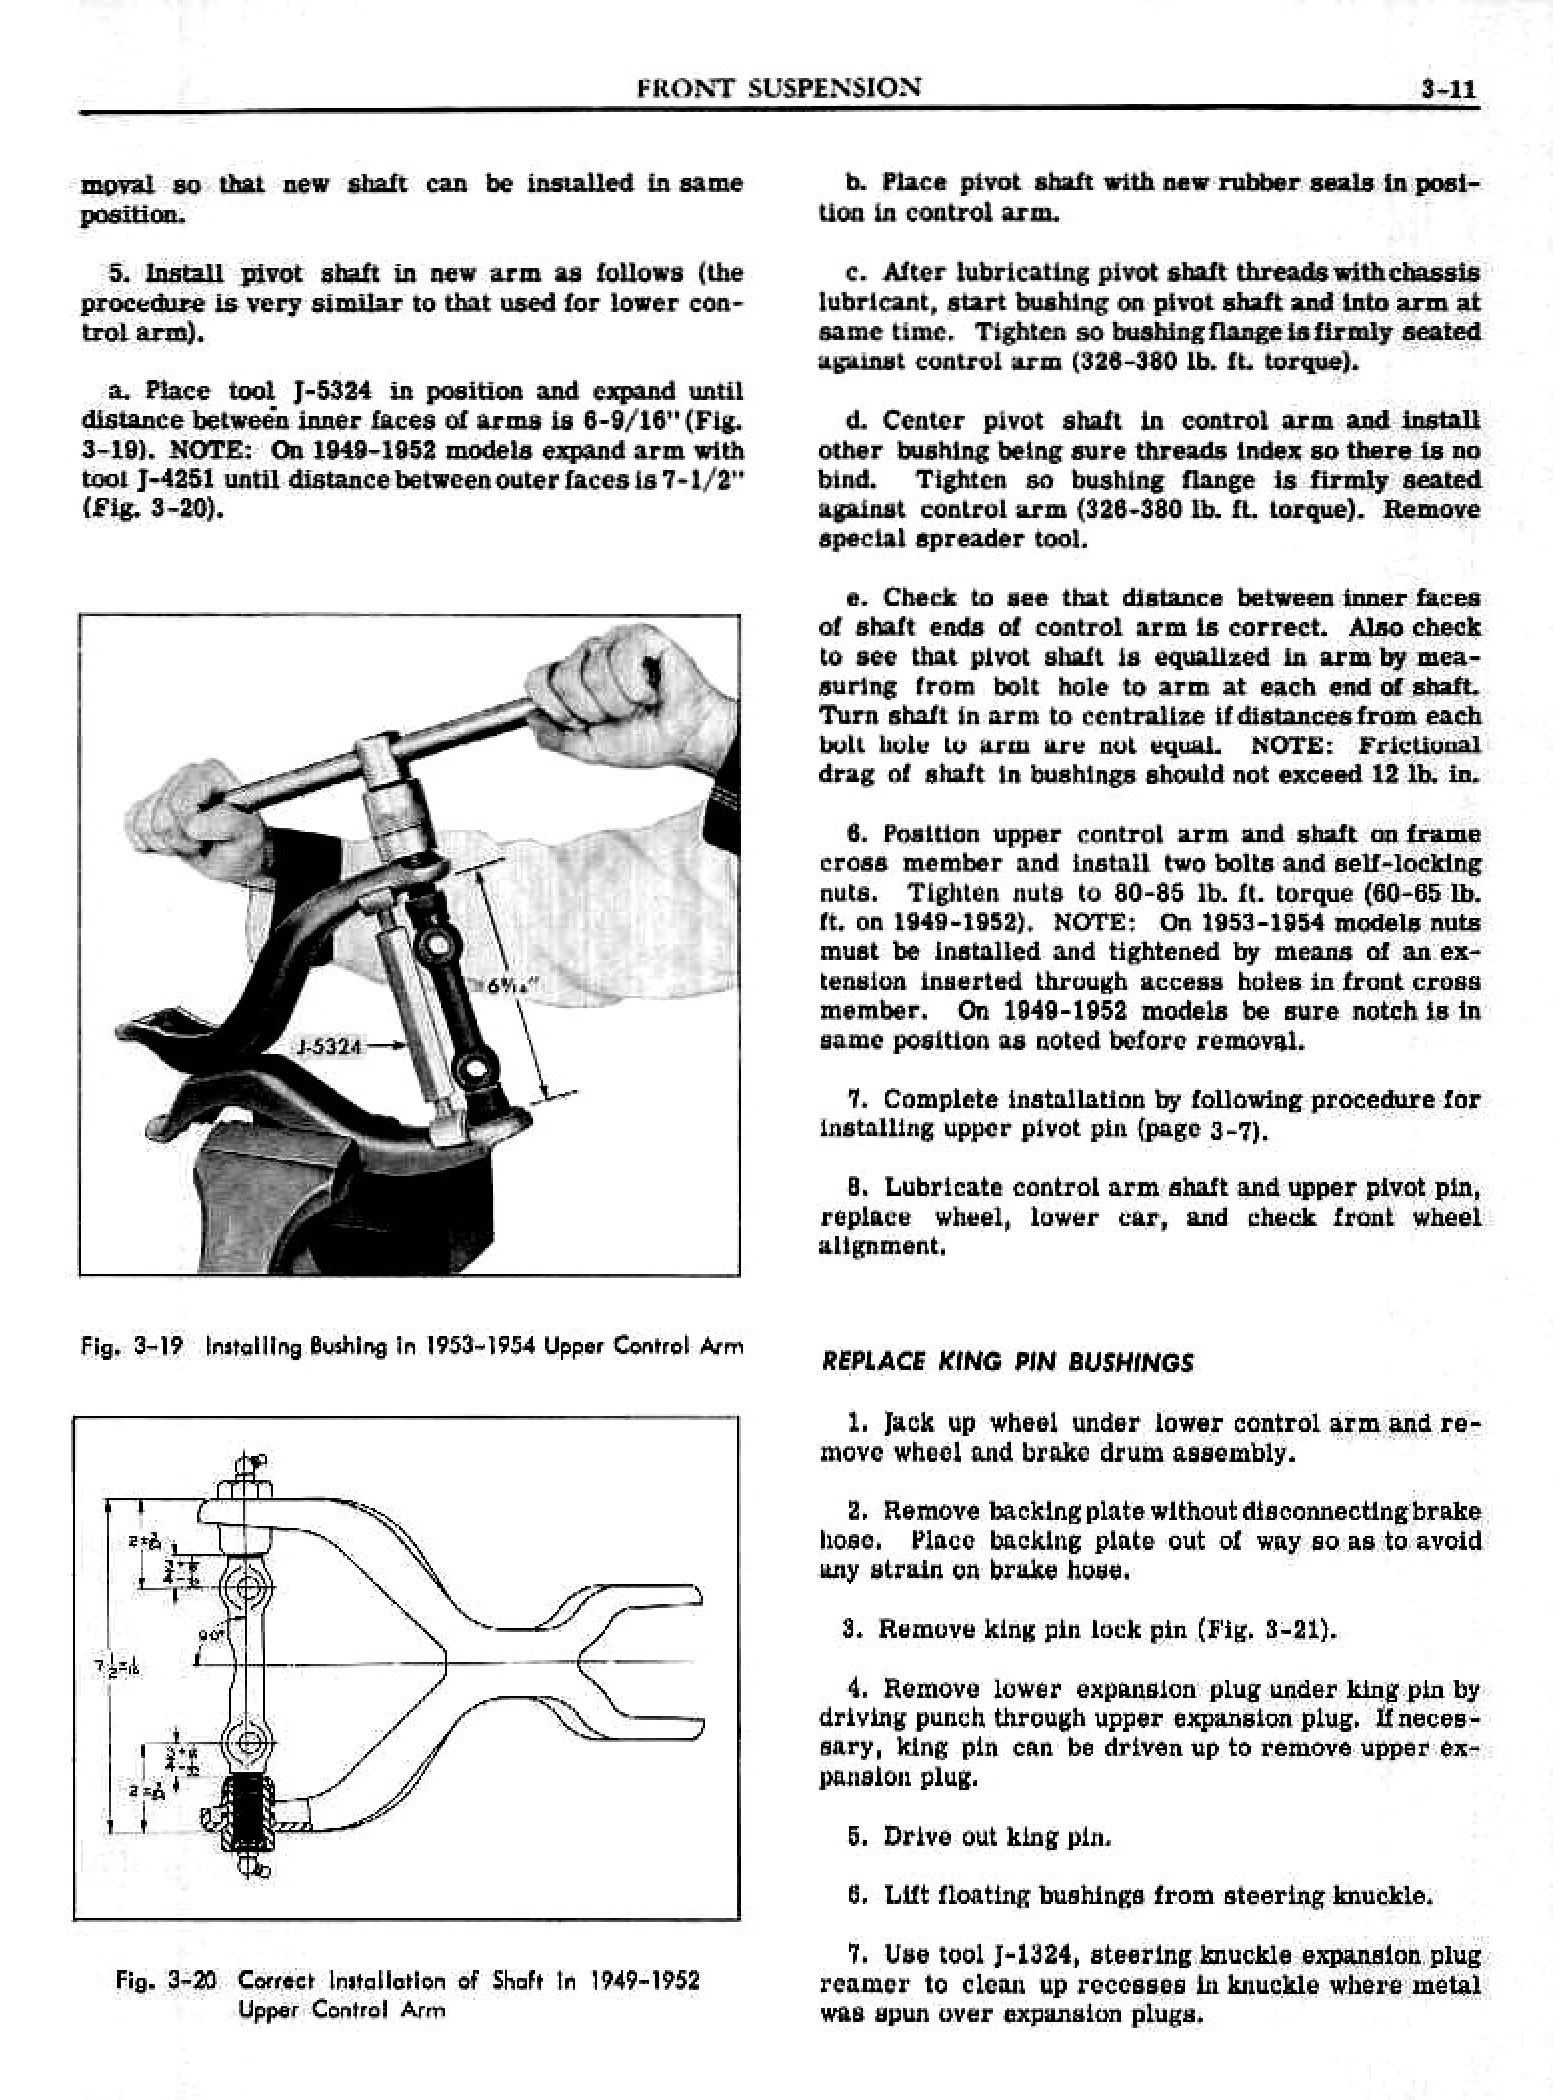 Diagram Of Front Suspension From Manual Manual Guide